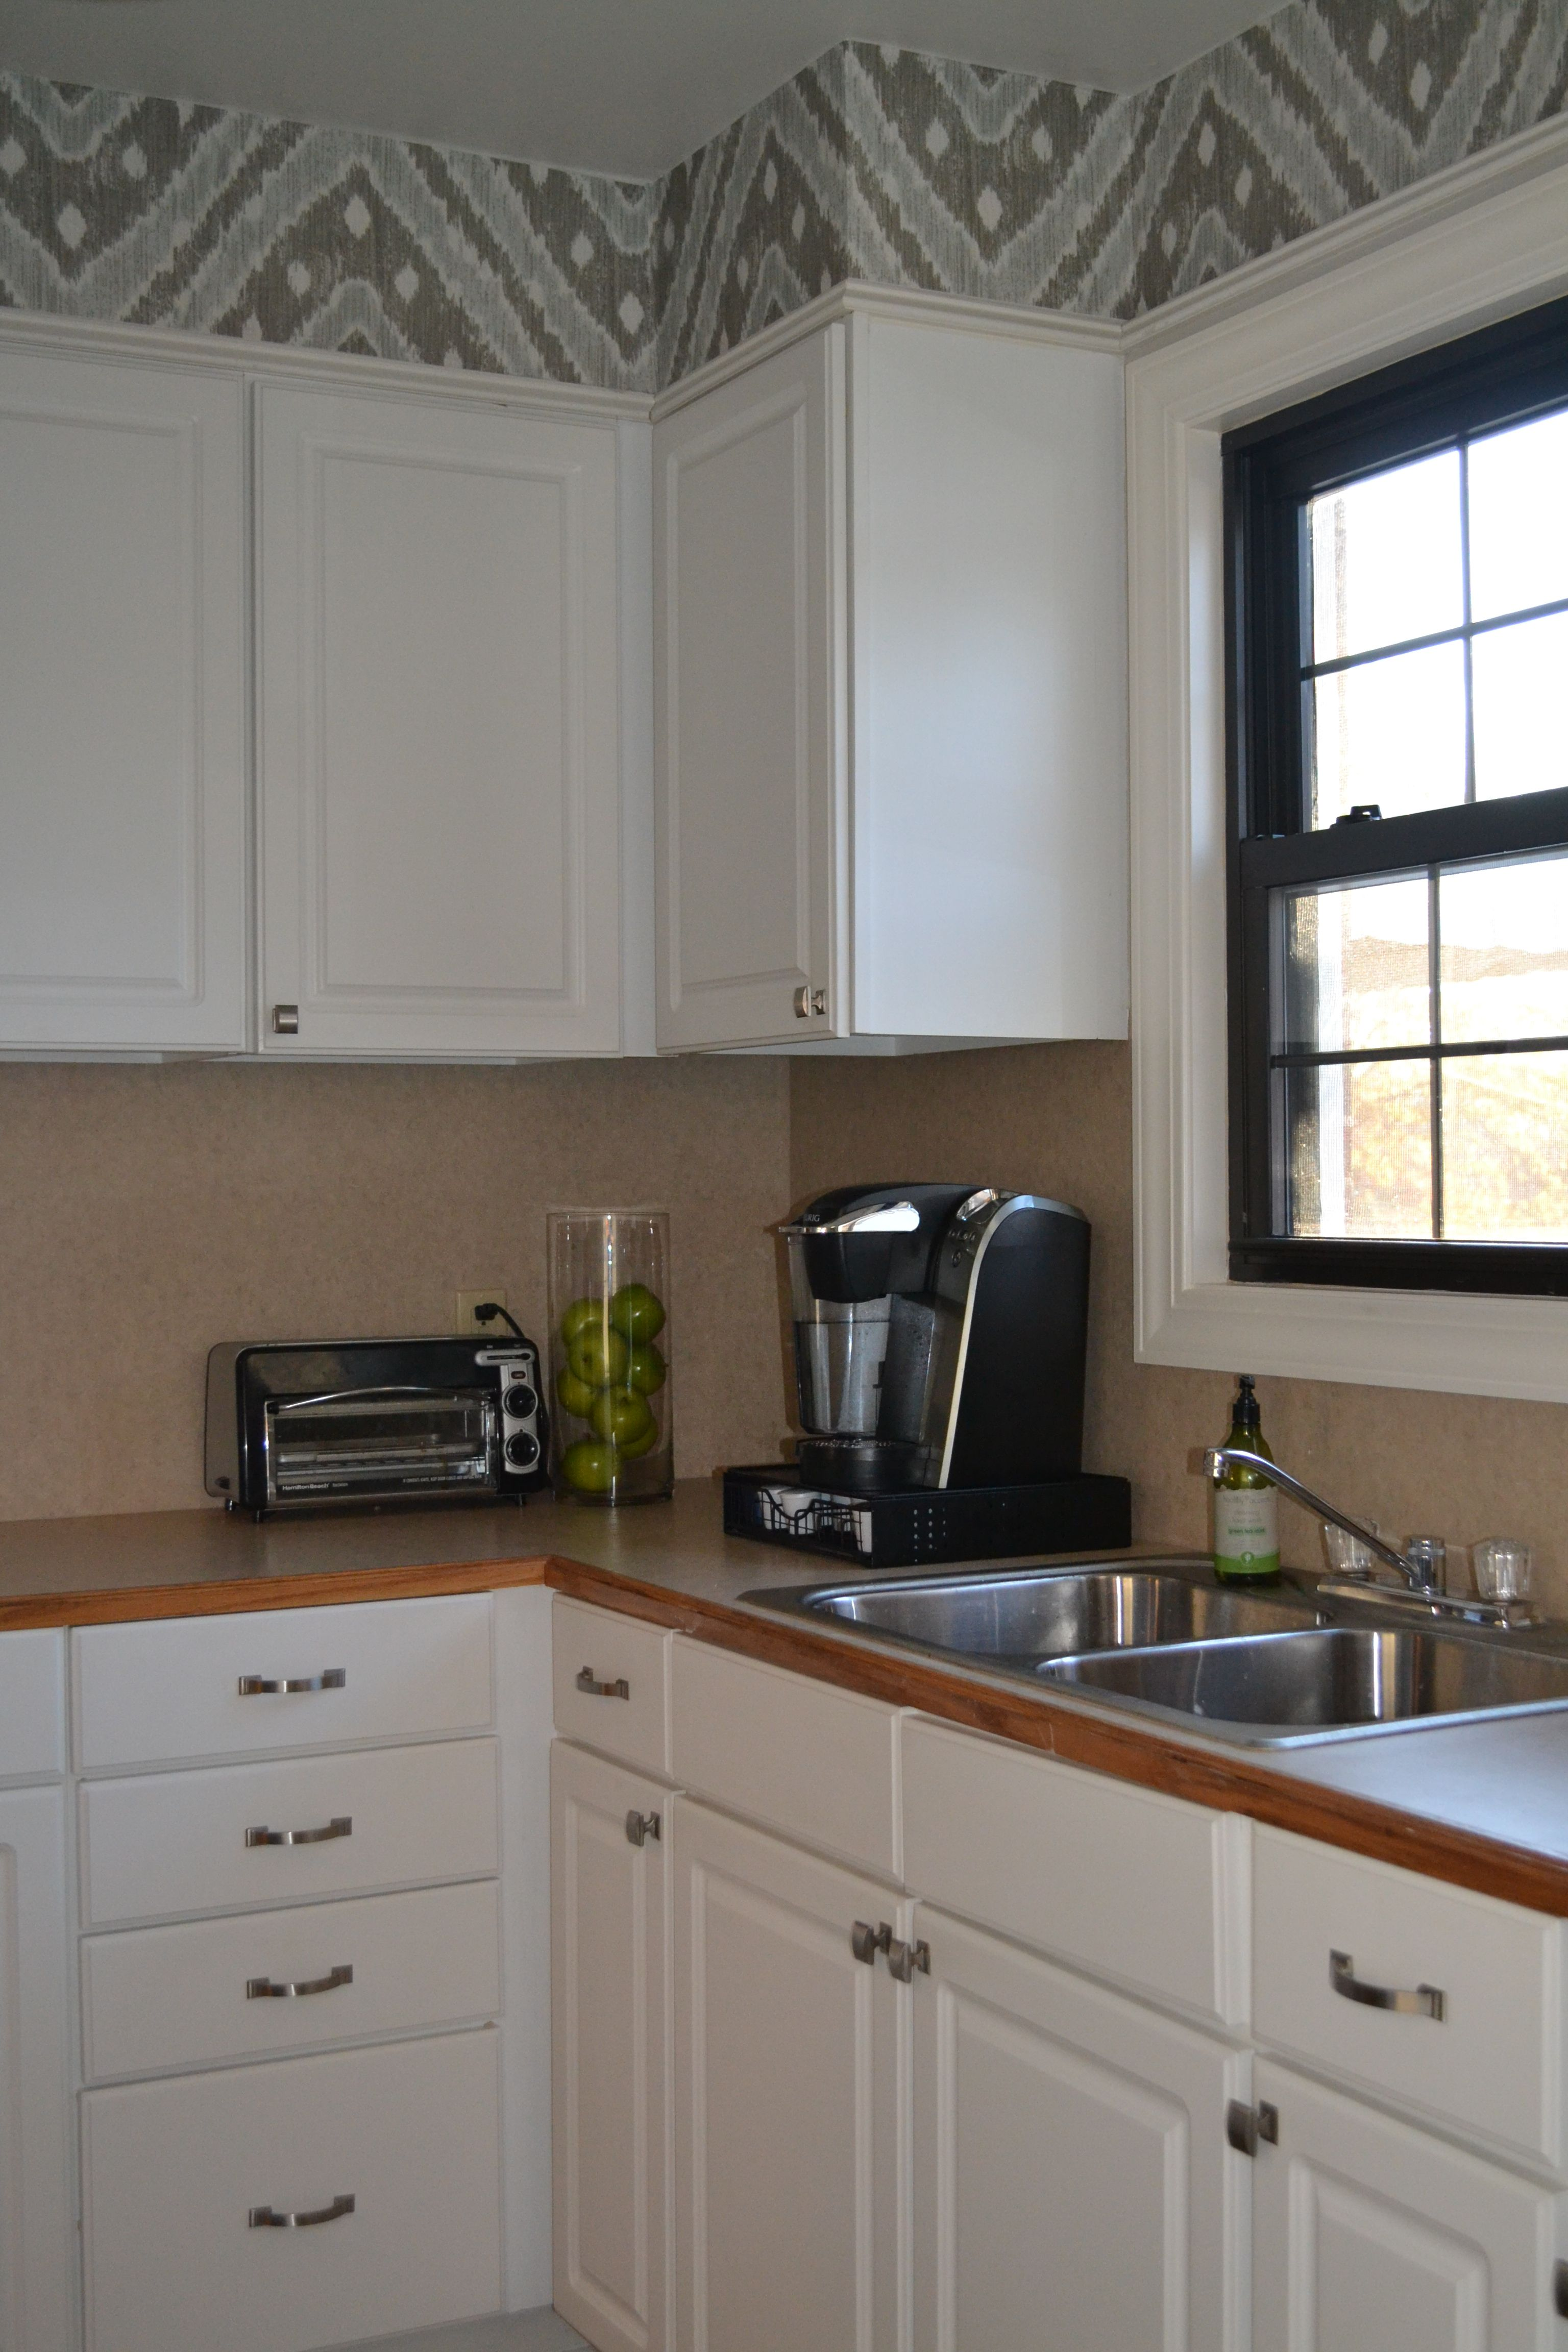 Update your kitchen with a wallpaper soffit And its removable